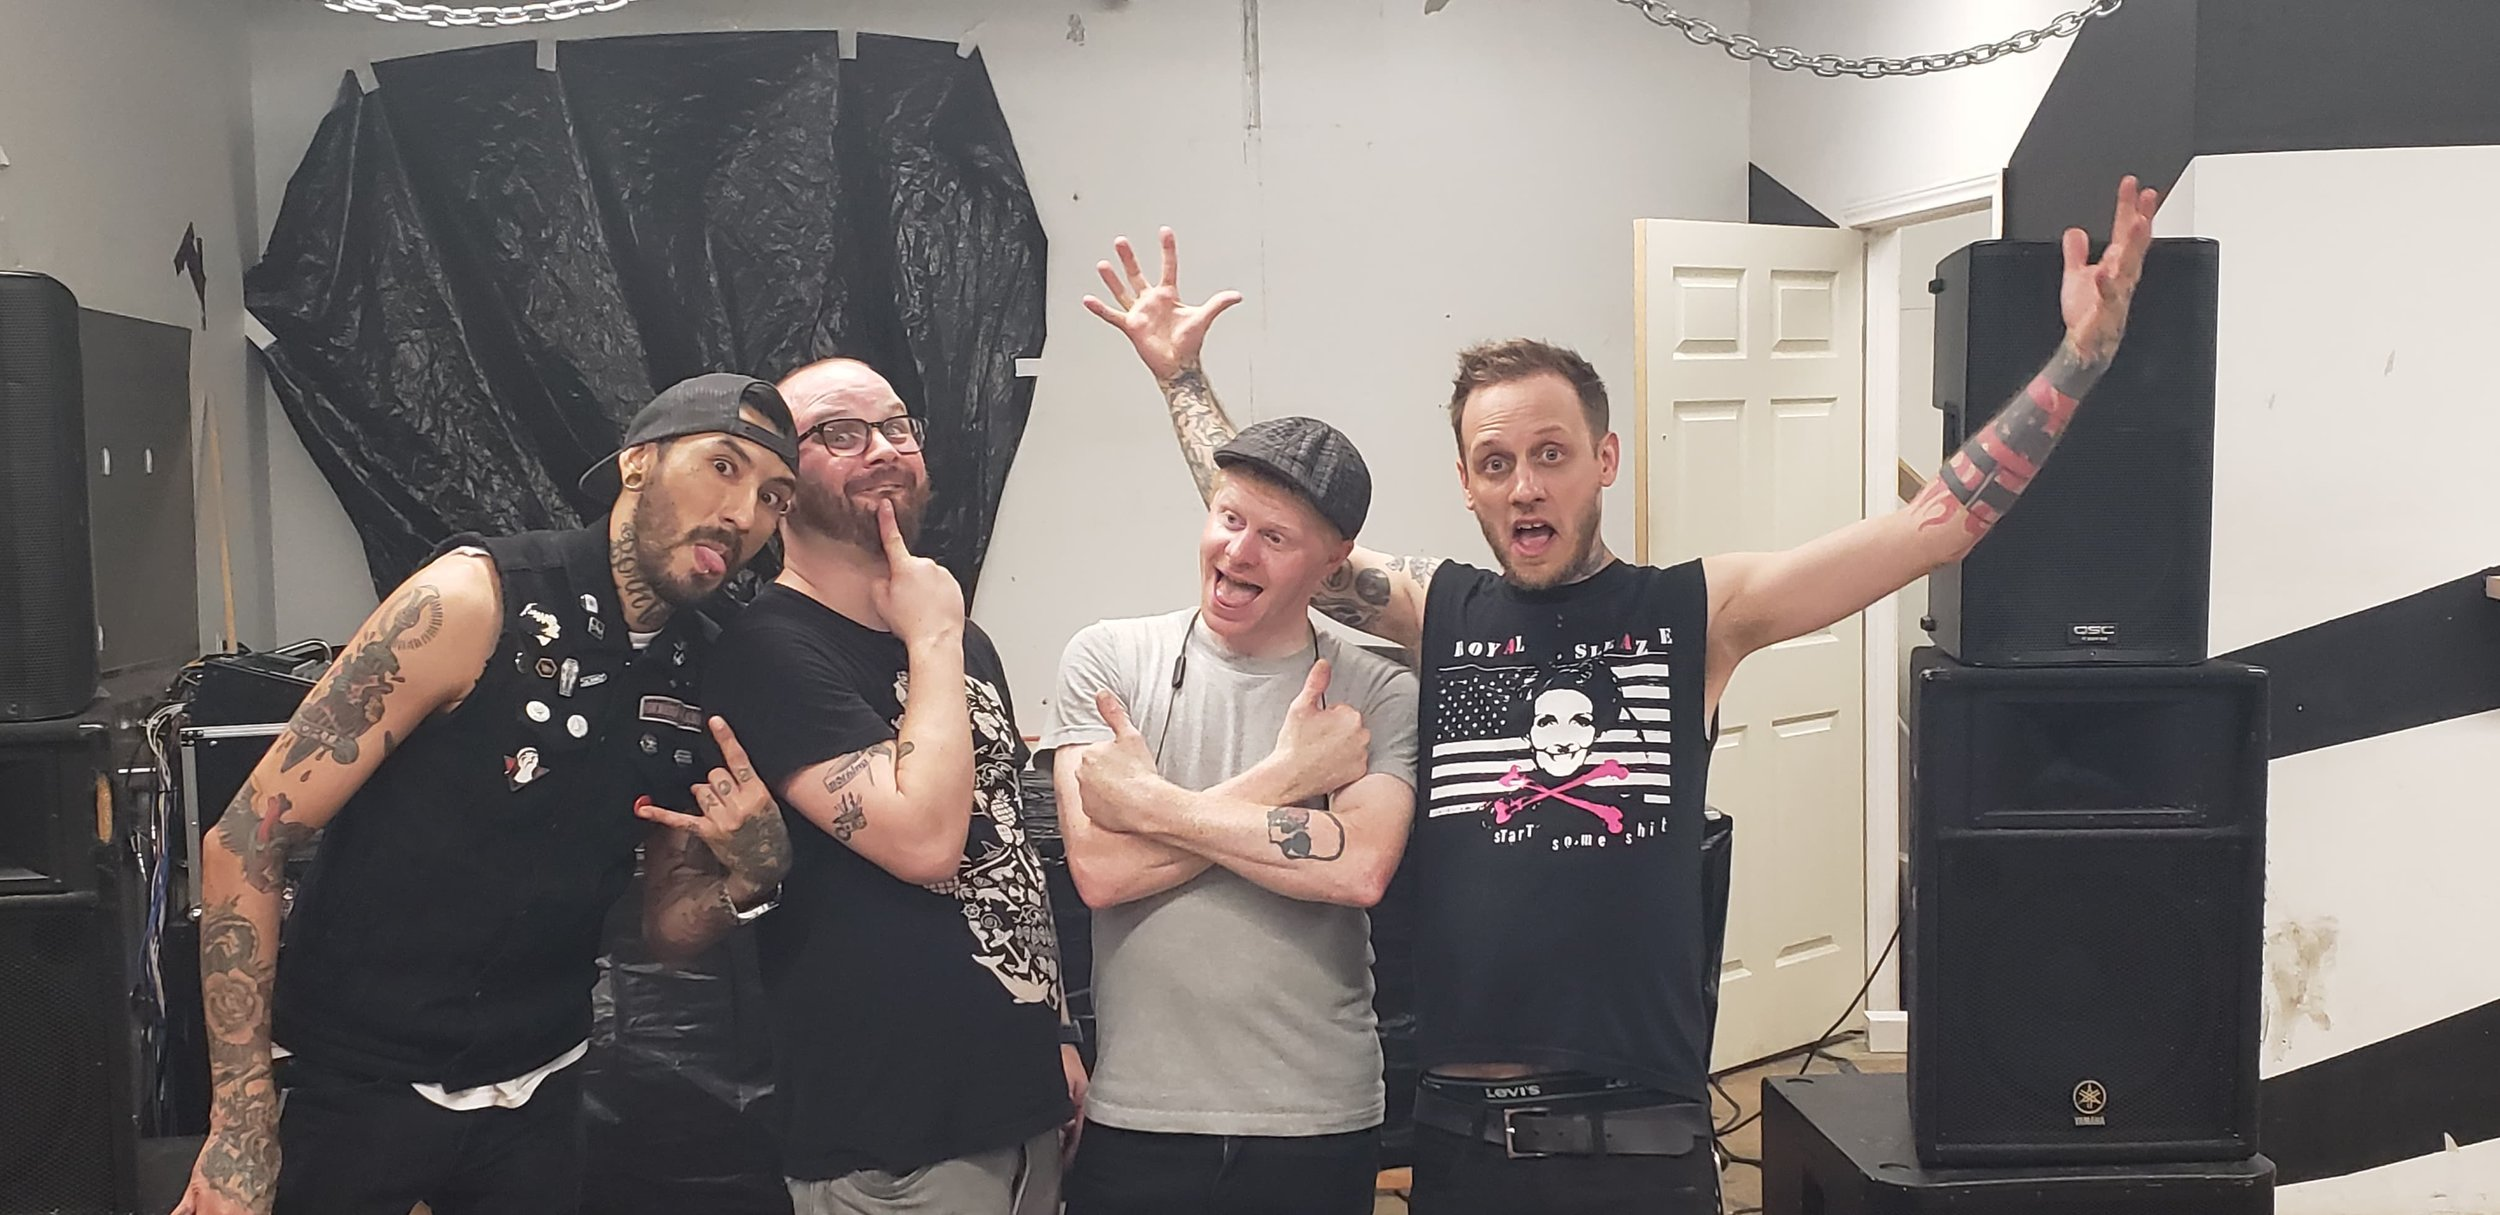 """These dudes right here make up my band """"The Revelry"""". Left to right we got Guido Crimes, Austin Mitchell, William Thomas Days the fifth, then there's me, and Jordan Leake is missing. Thankful for the dudes for making my band sound fucking killer!"""